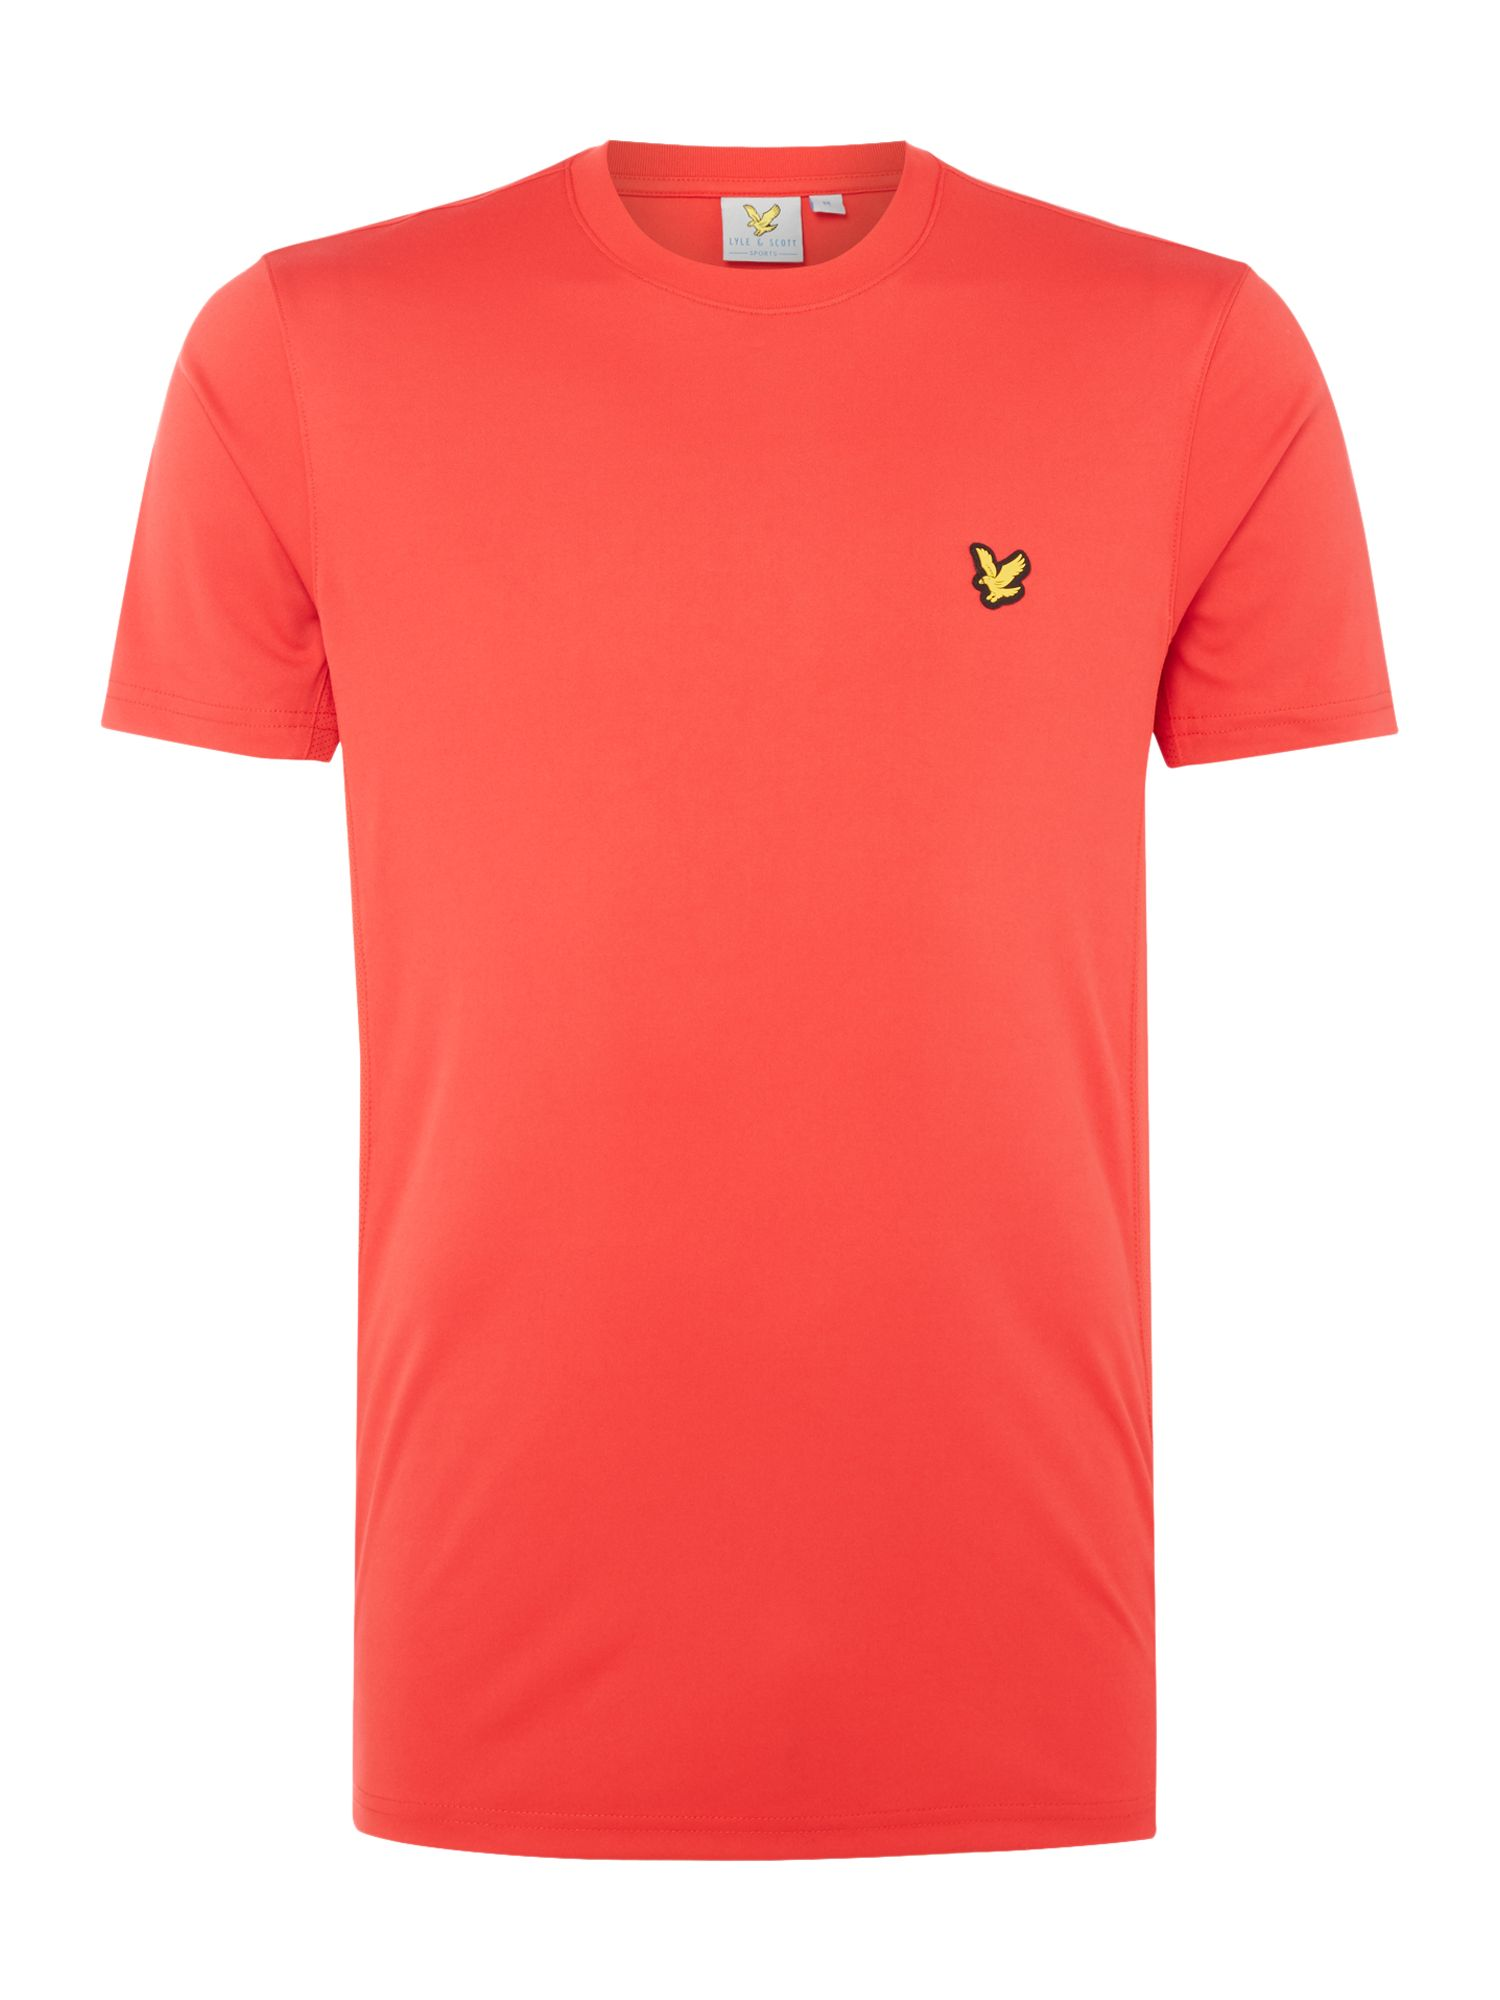 Lyle and Scott Men's Lyle and Scott Sports Two Tone Peters Crew-Neck T-Shirt, Red